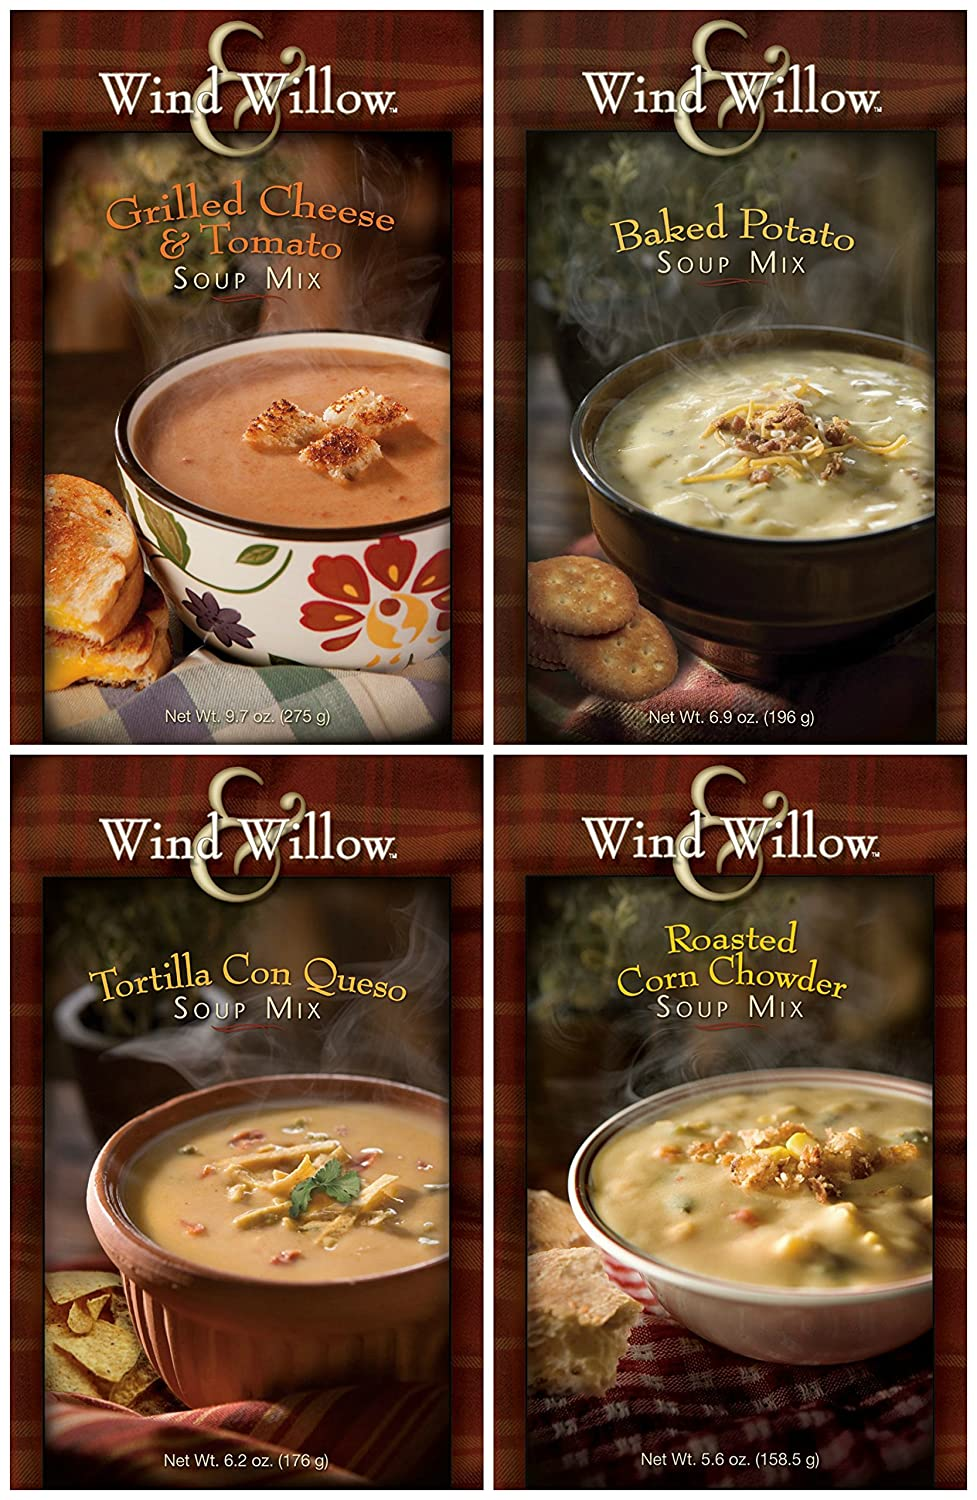 Wind & Willow Favorite Soup Mix Bundle: Baked Potato, Grilled Cheese & Tomato, Roasted Corn Chowder, and Tortilla Con Queso - 4 Total Items